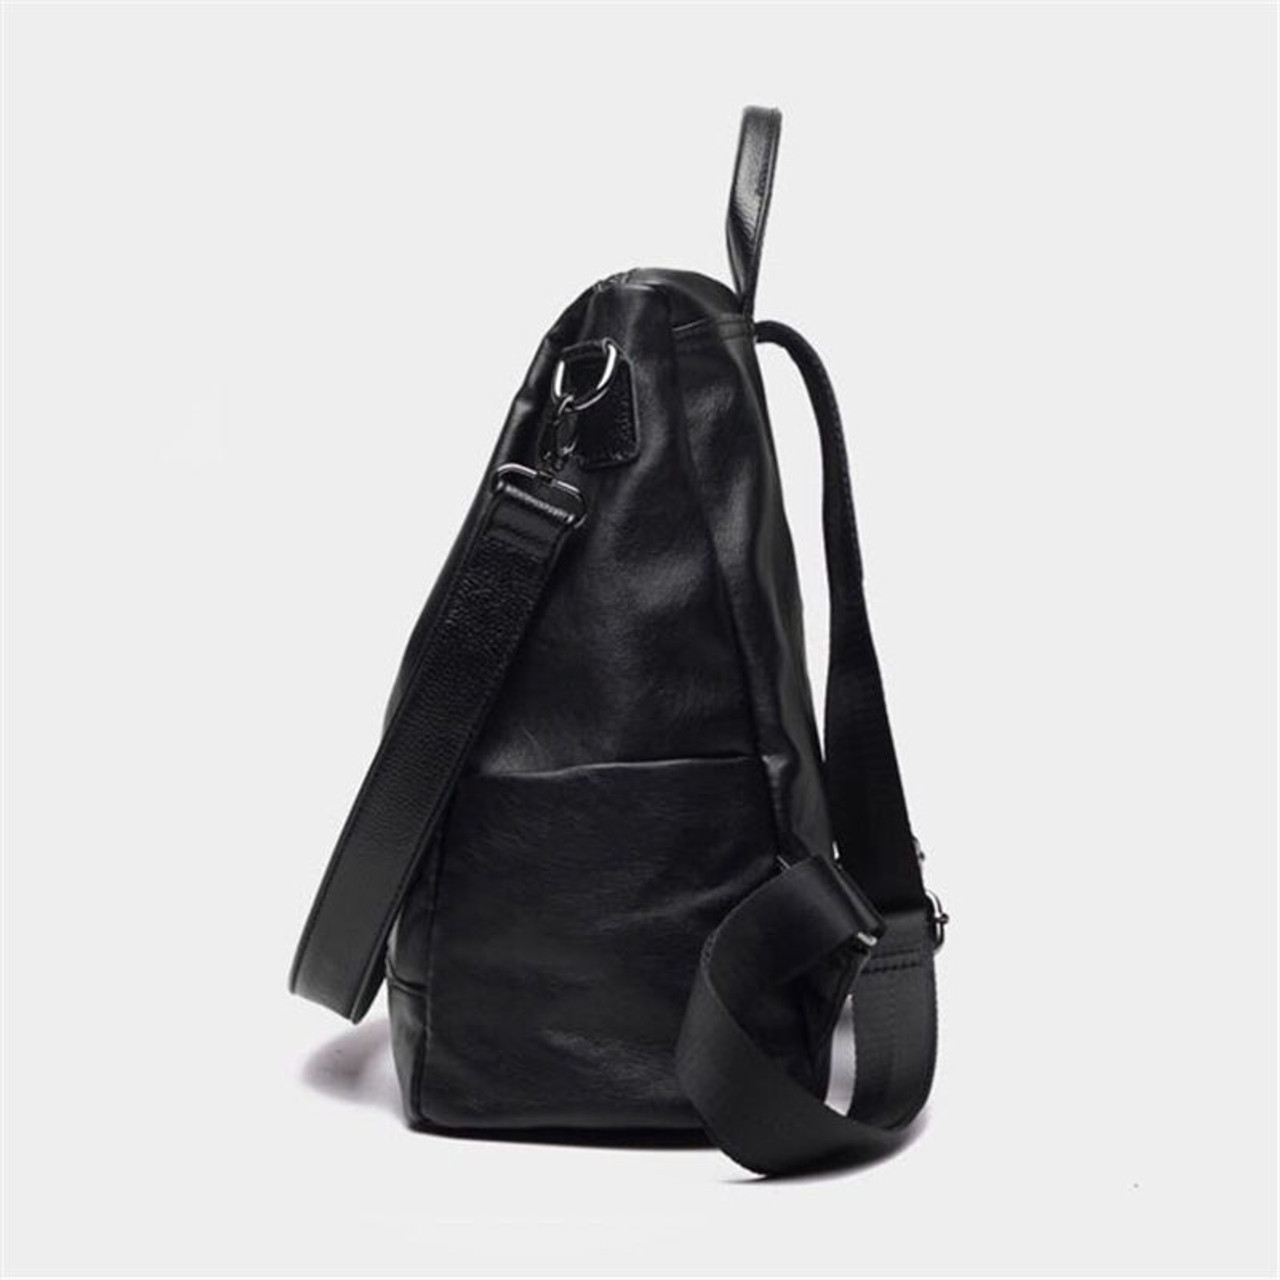 81c3744e50 ... 2017 Fashion Women Backpack High Quality Youth Leather Backpacks for Teenage  Girls Female School Shoulder Bag ...